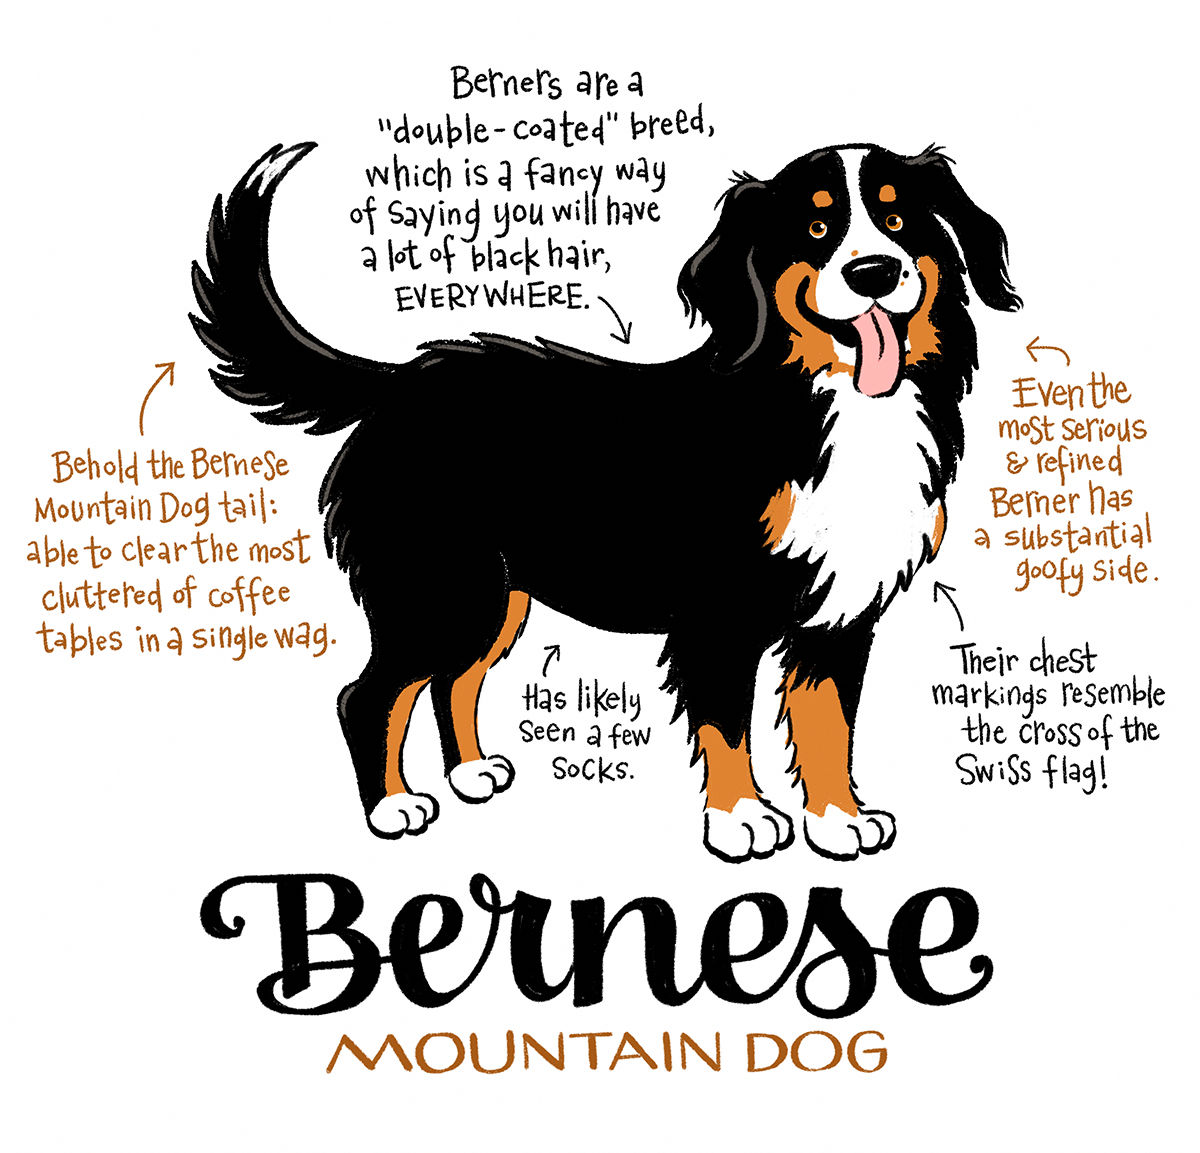 Image Result For Bernese Mountain Dog Burmese Mountain Dogs Mountain Dogs Burnese Mountain Dog